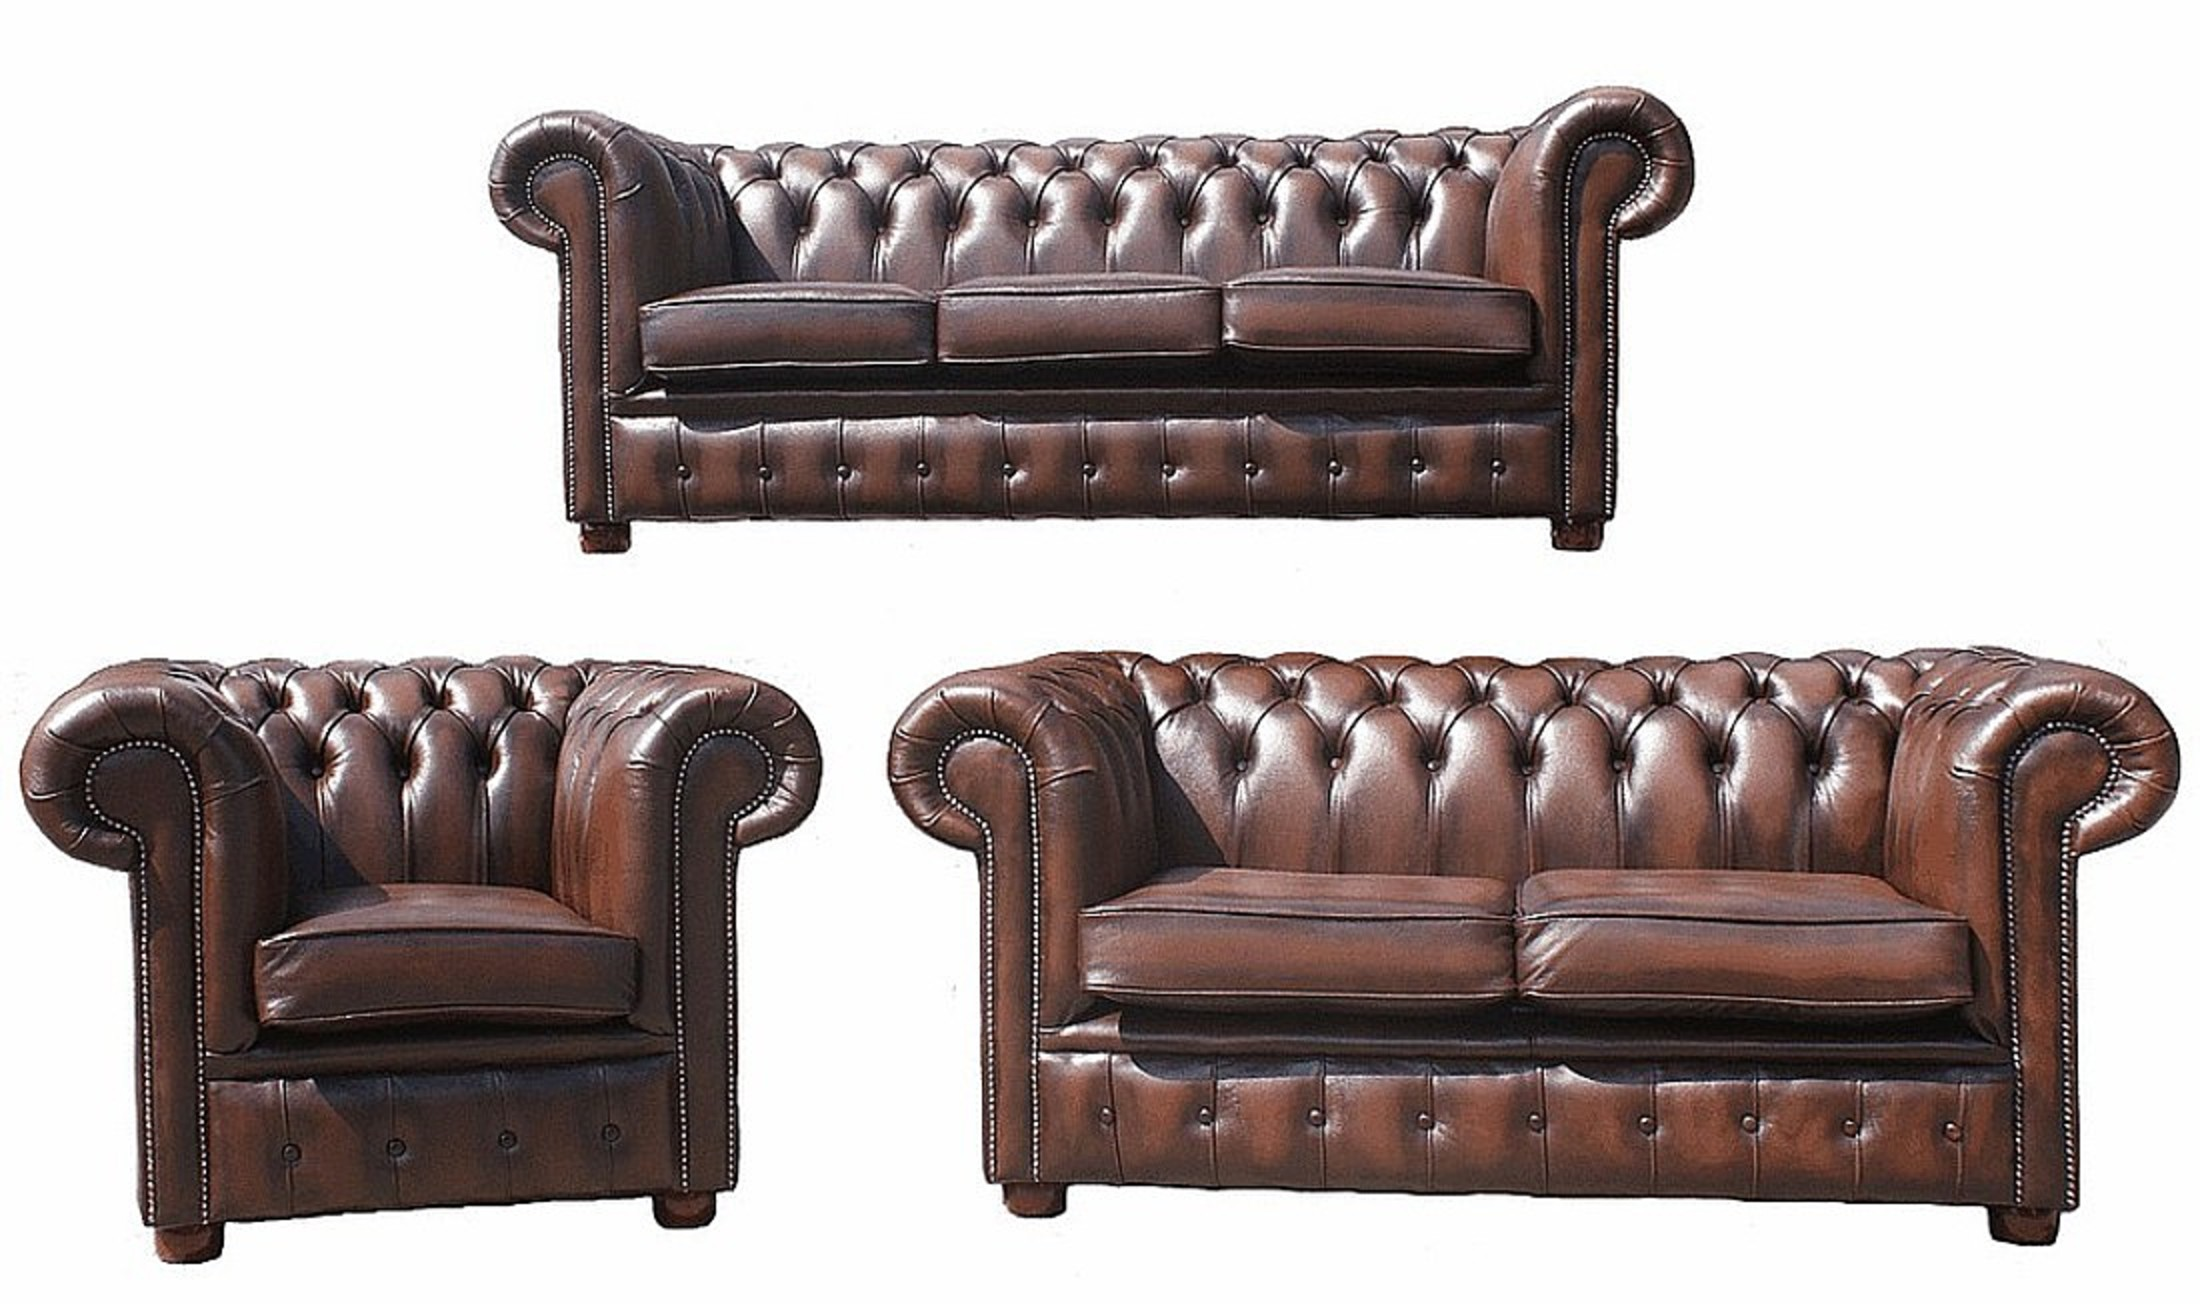 Chesterfield Sofa Leder Chesterfield 3+2+1 Leather Sofa Offer Antique Brown